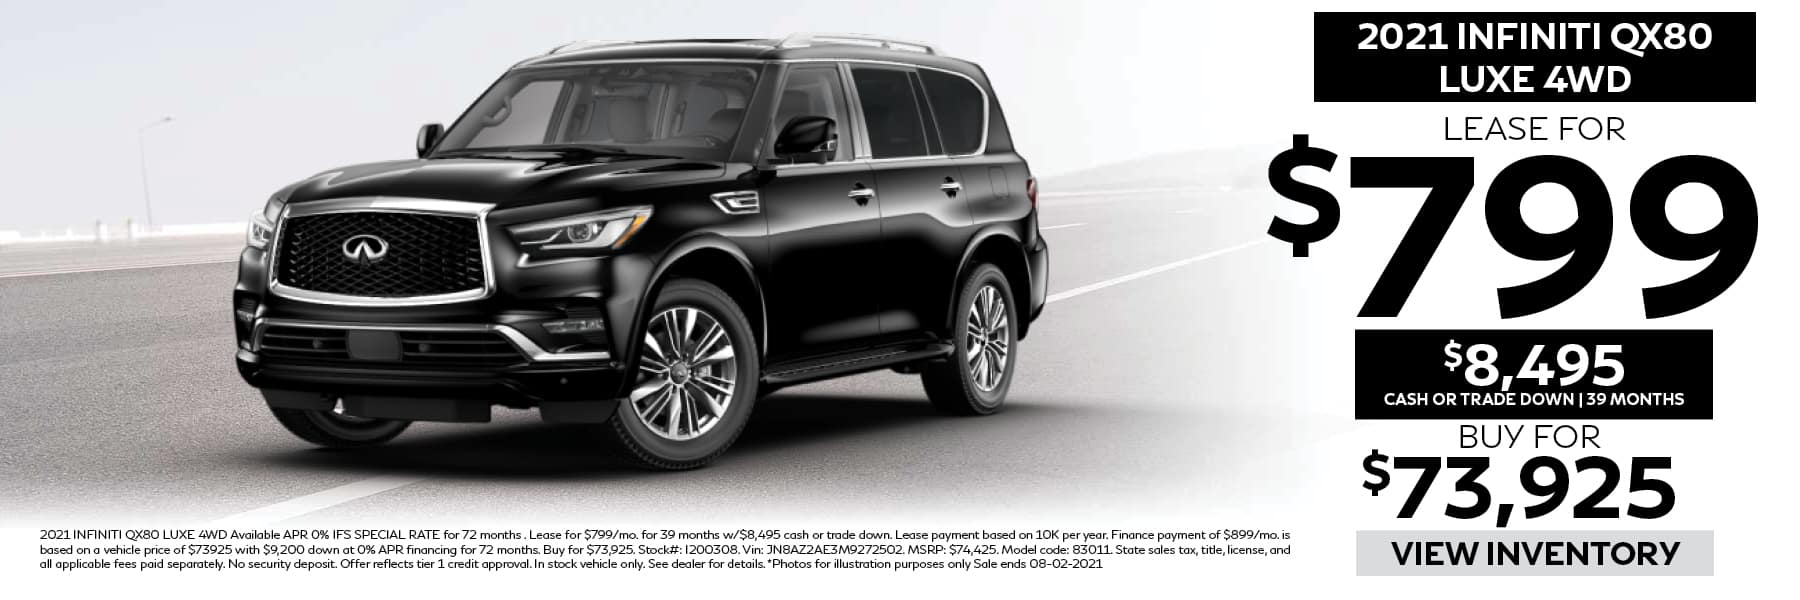 2021 INFINITI QX80 LUXE Lease for $799 per Month with $8,495 Cash or Trade Down for 39 Months